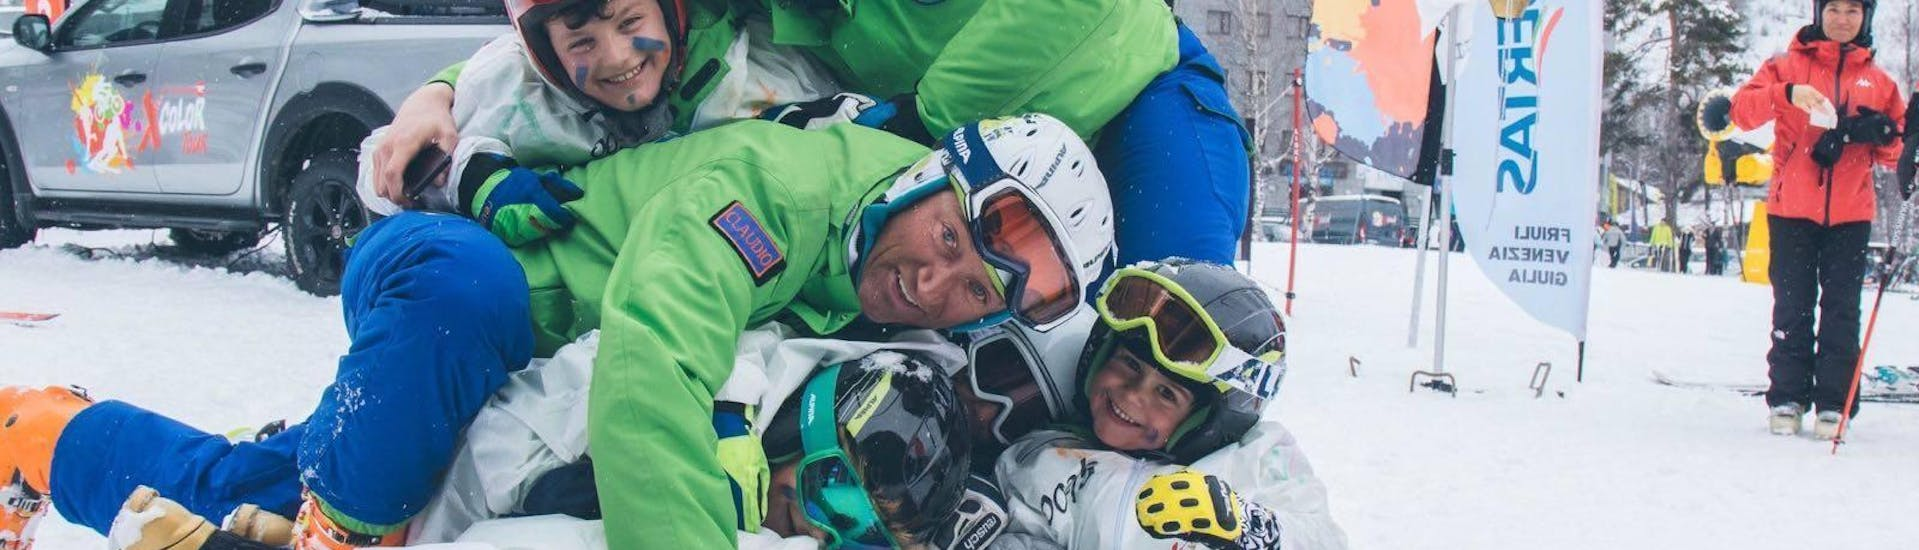 During the Kids Ski Lessons (4-8 y.) - All Levels - Christmas, children are having fun with a ski instructor from the ski school Scuola di Sci B.foxes.